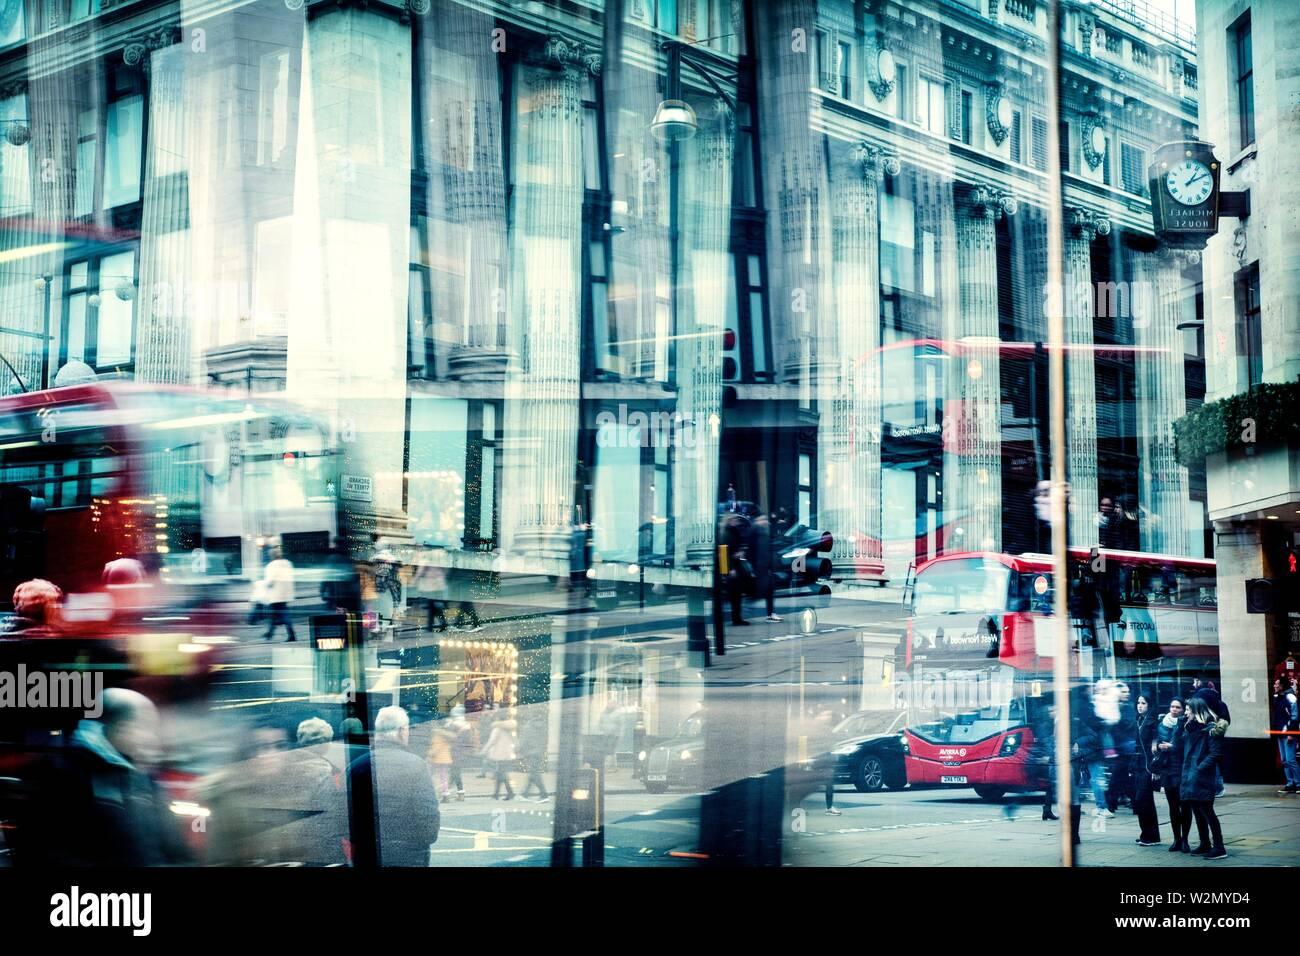 View of a street reflected in a glass with traffic, people and buildings. Selfridges, Oxford St. Londes, UK, Europe. - Stock Image